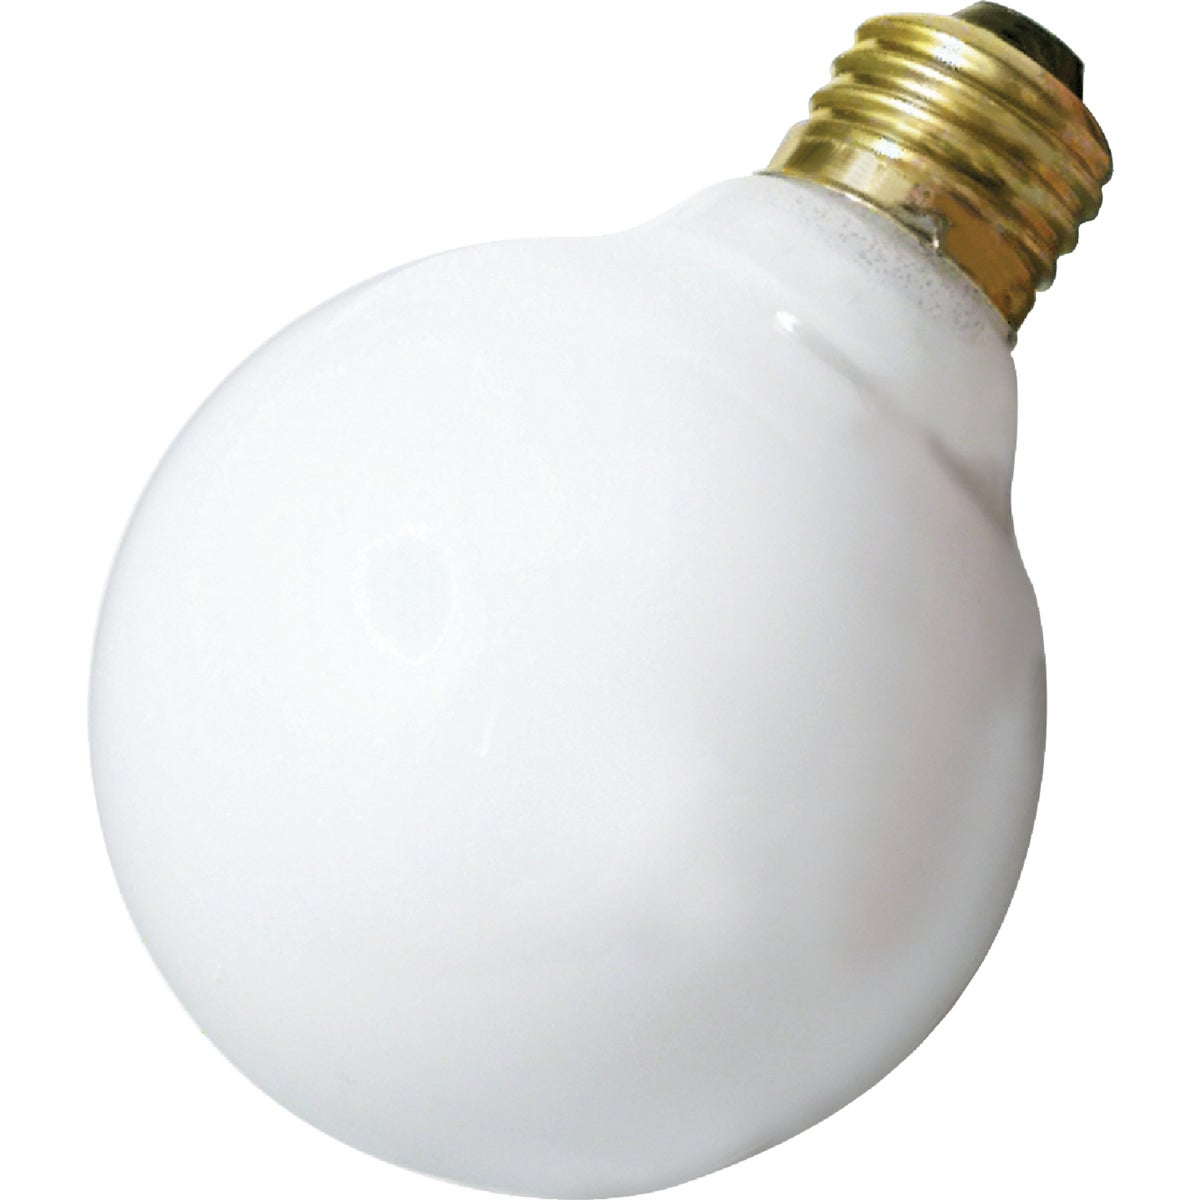 "40W WHT 3-1/8""GLOBE BULB - 12979 by G E Lighting"